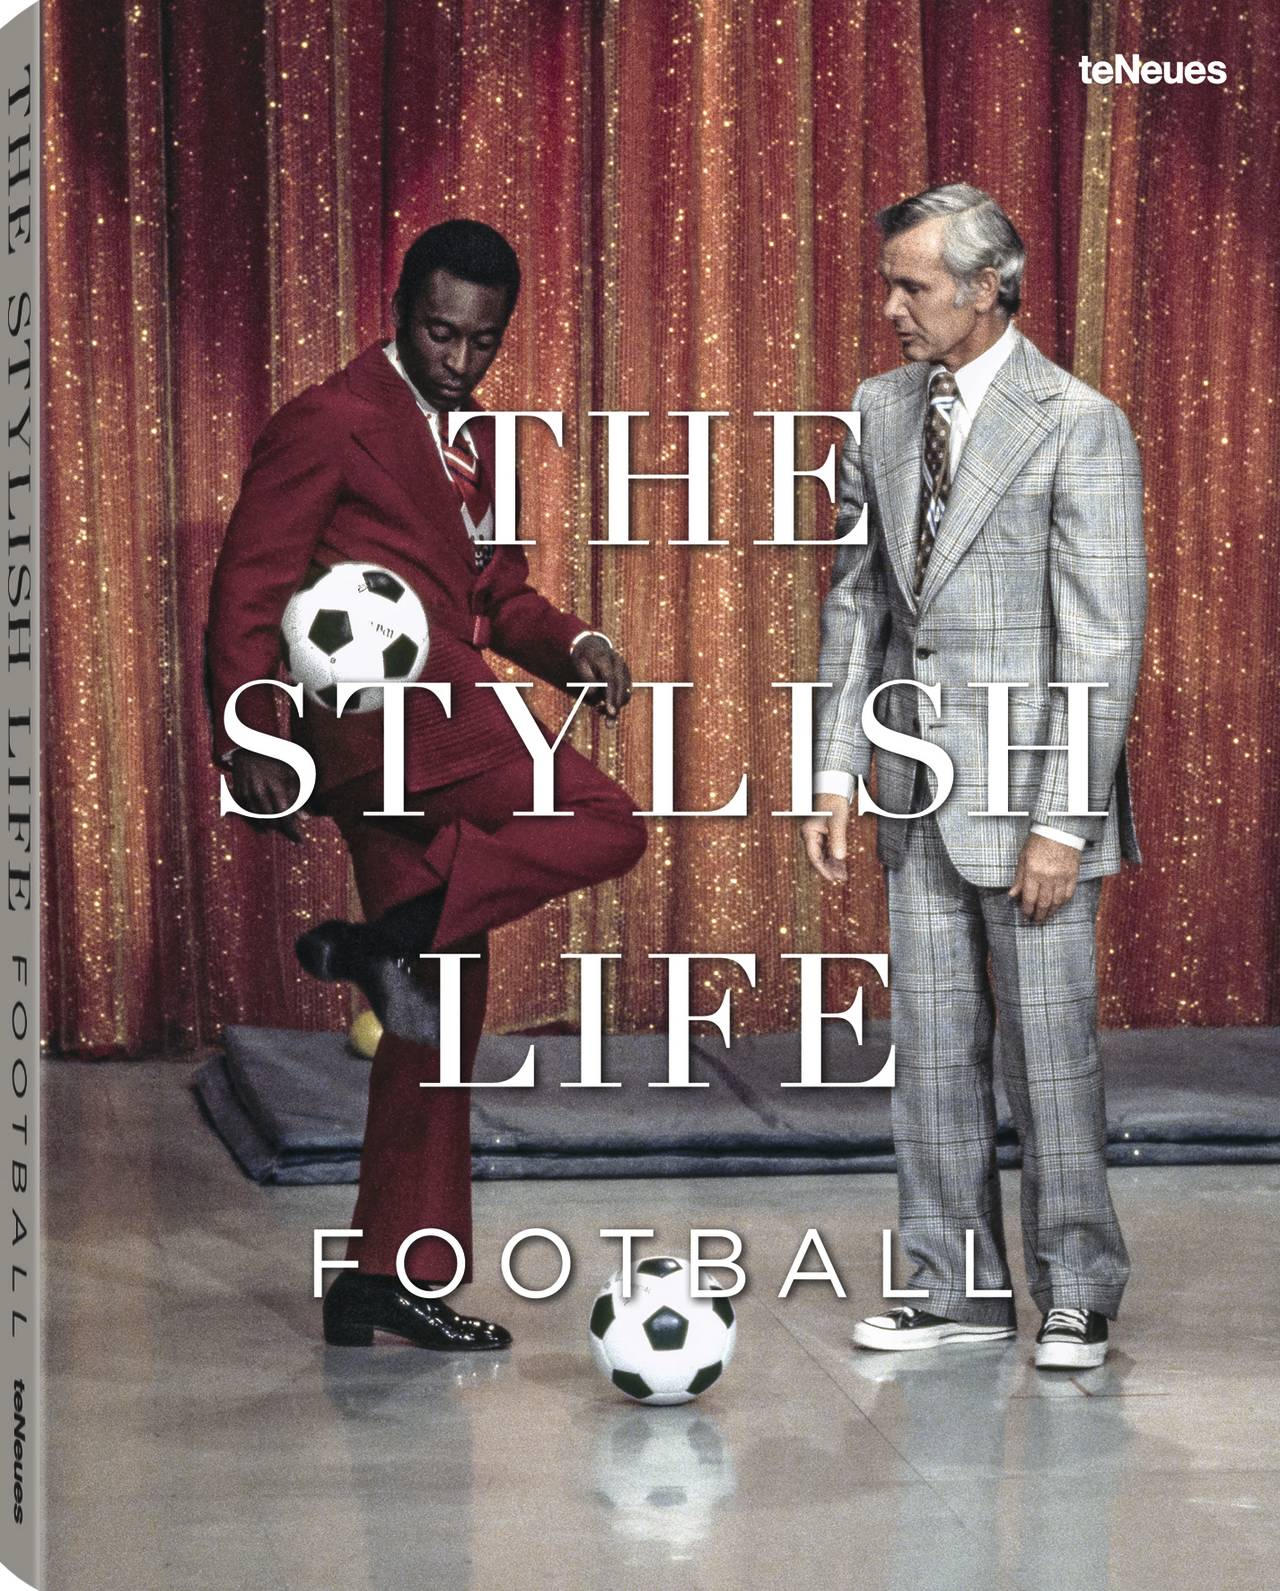 © The Stylish Life - Football, published by teNeues, www.teneues.com. Photo © picture alliance/AP Images